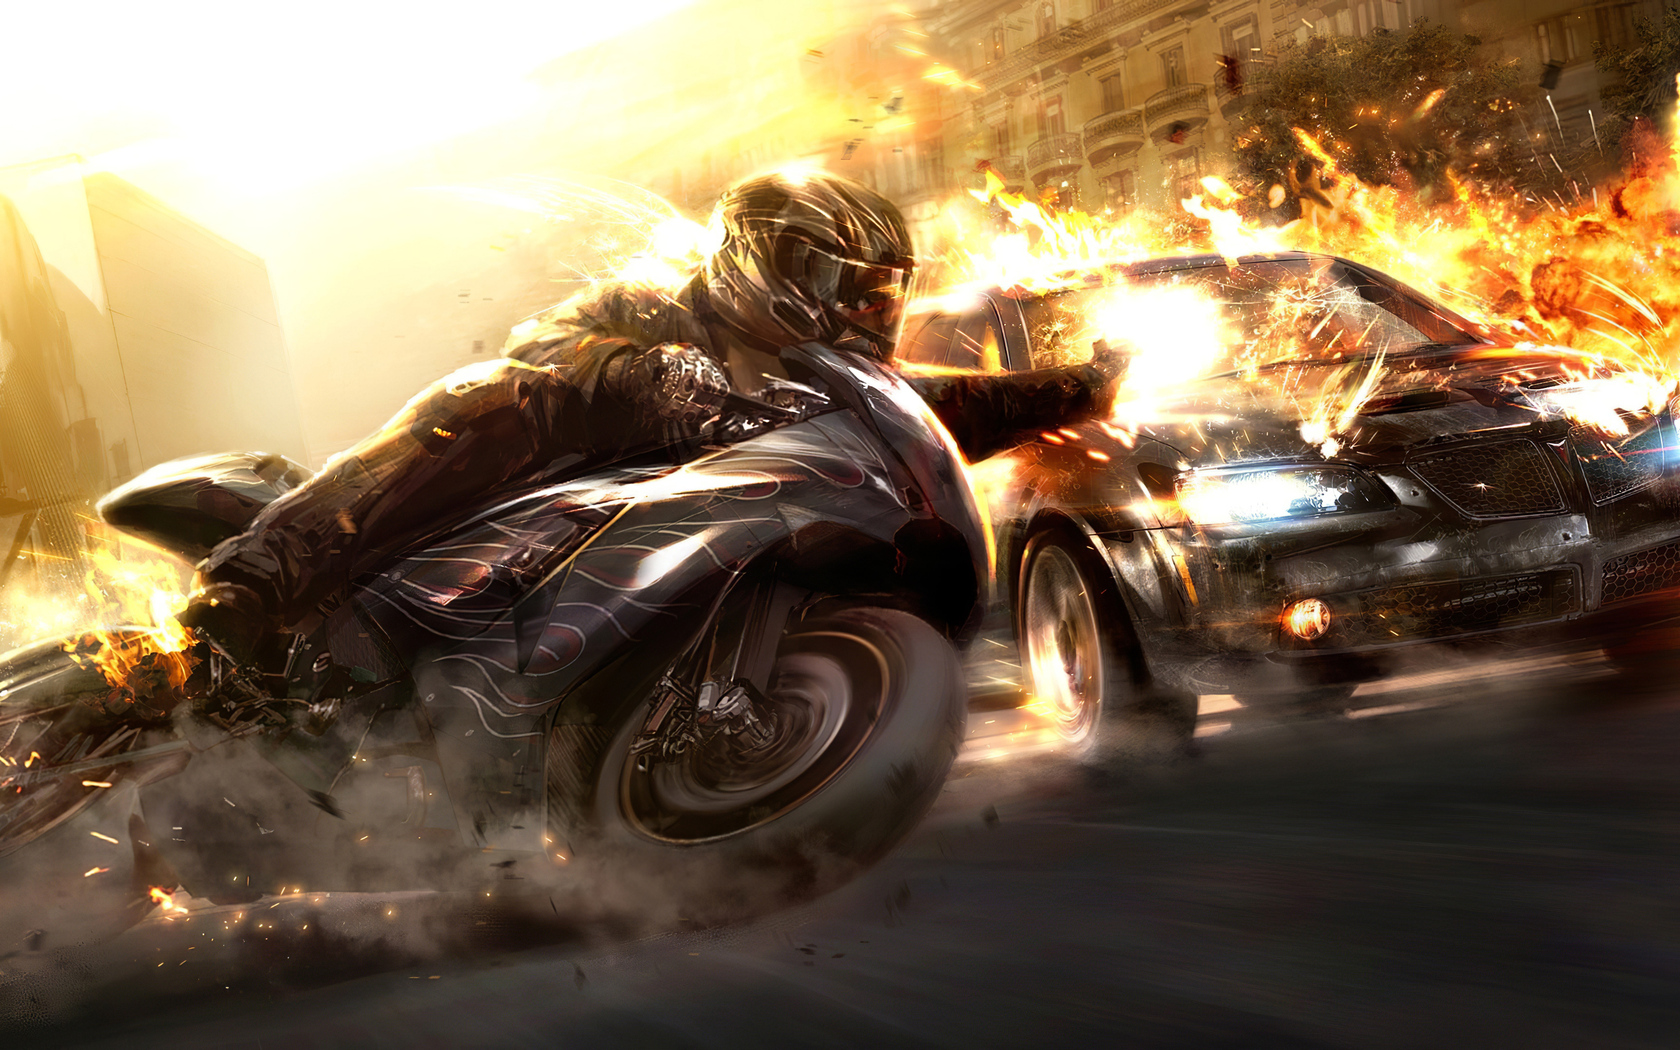 high-speed-motorbike-cop-car-chase-61.jpg